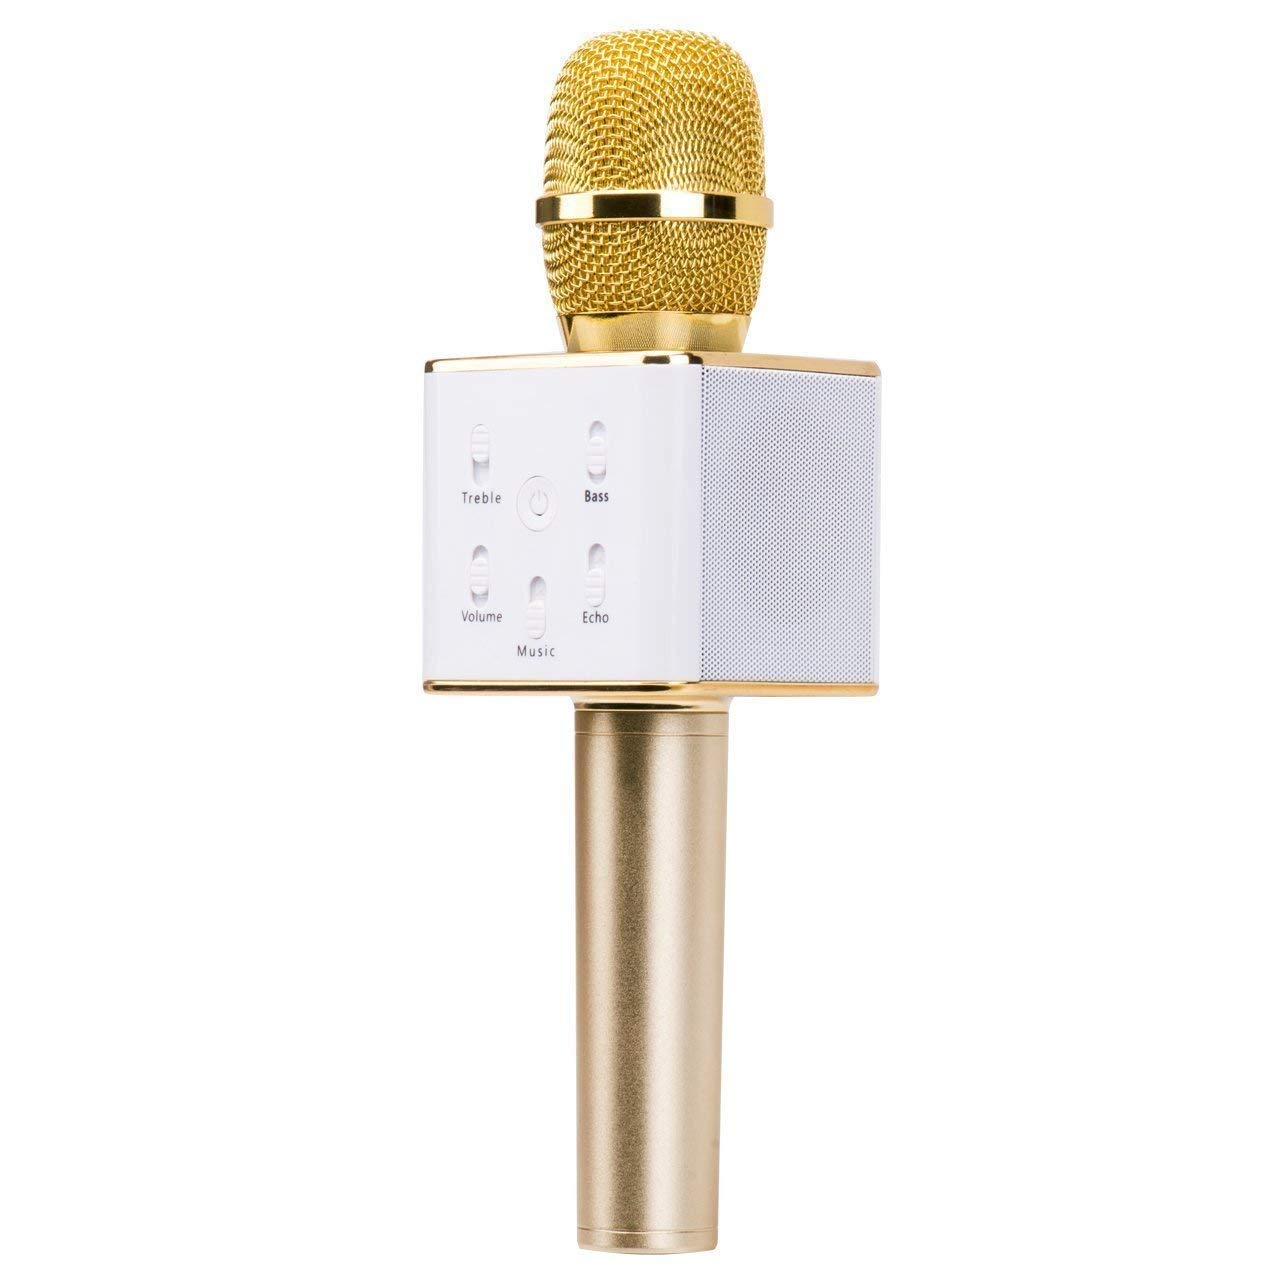 Portable Wireless Karaoke Microphone, Built-in HIFI Speaker and 2600mAH battery capacity, Support 32GB TFcard,Easter Gift 3-in-1 Portable handheld Speaker for iPhone/Android/iPad/Sony,PC and All Smart